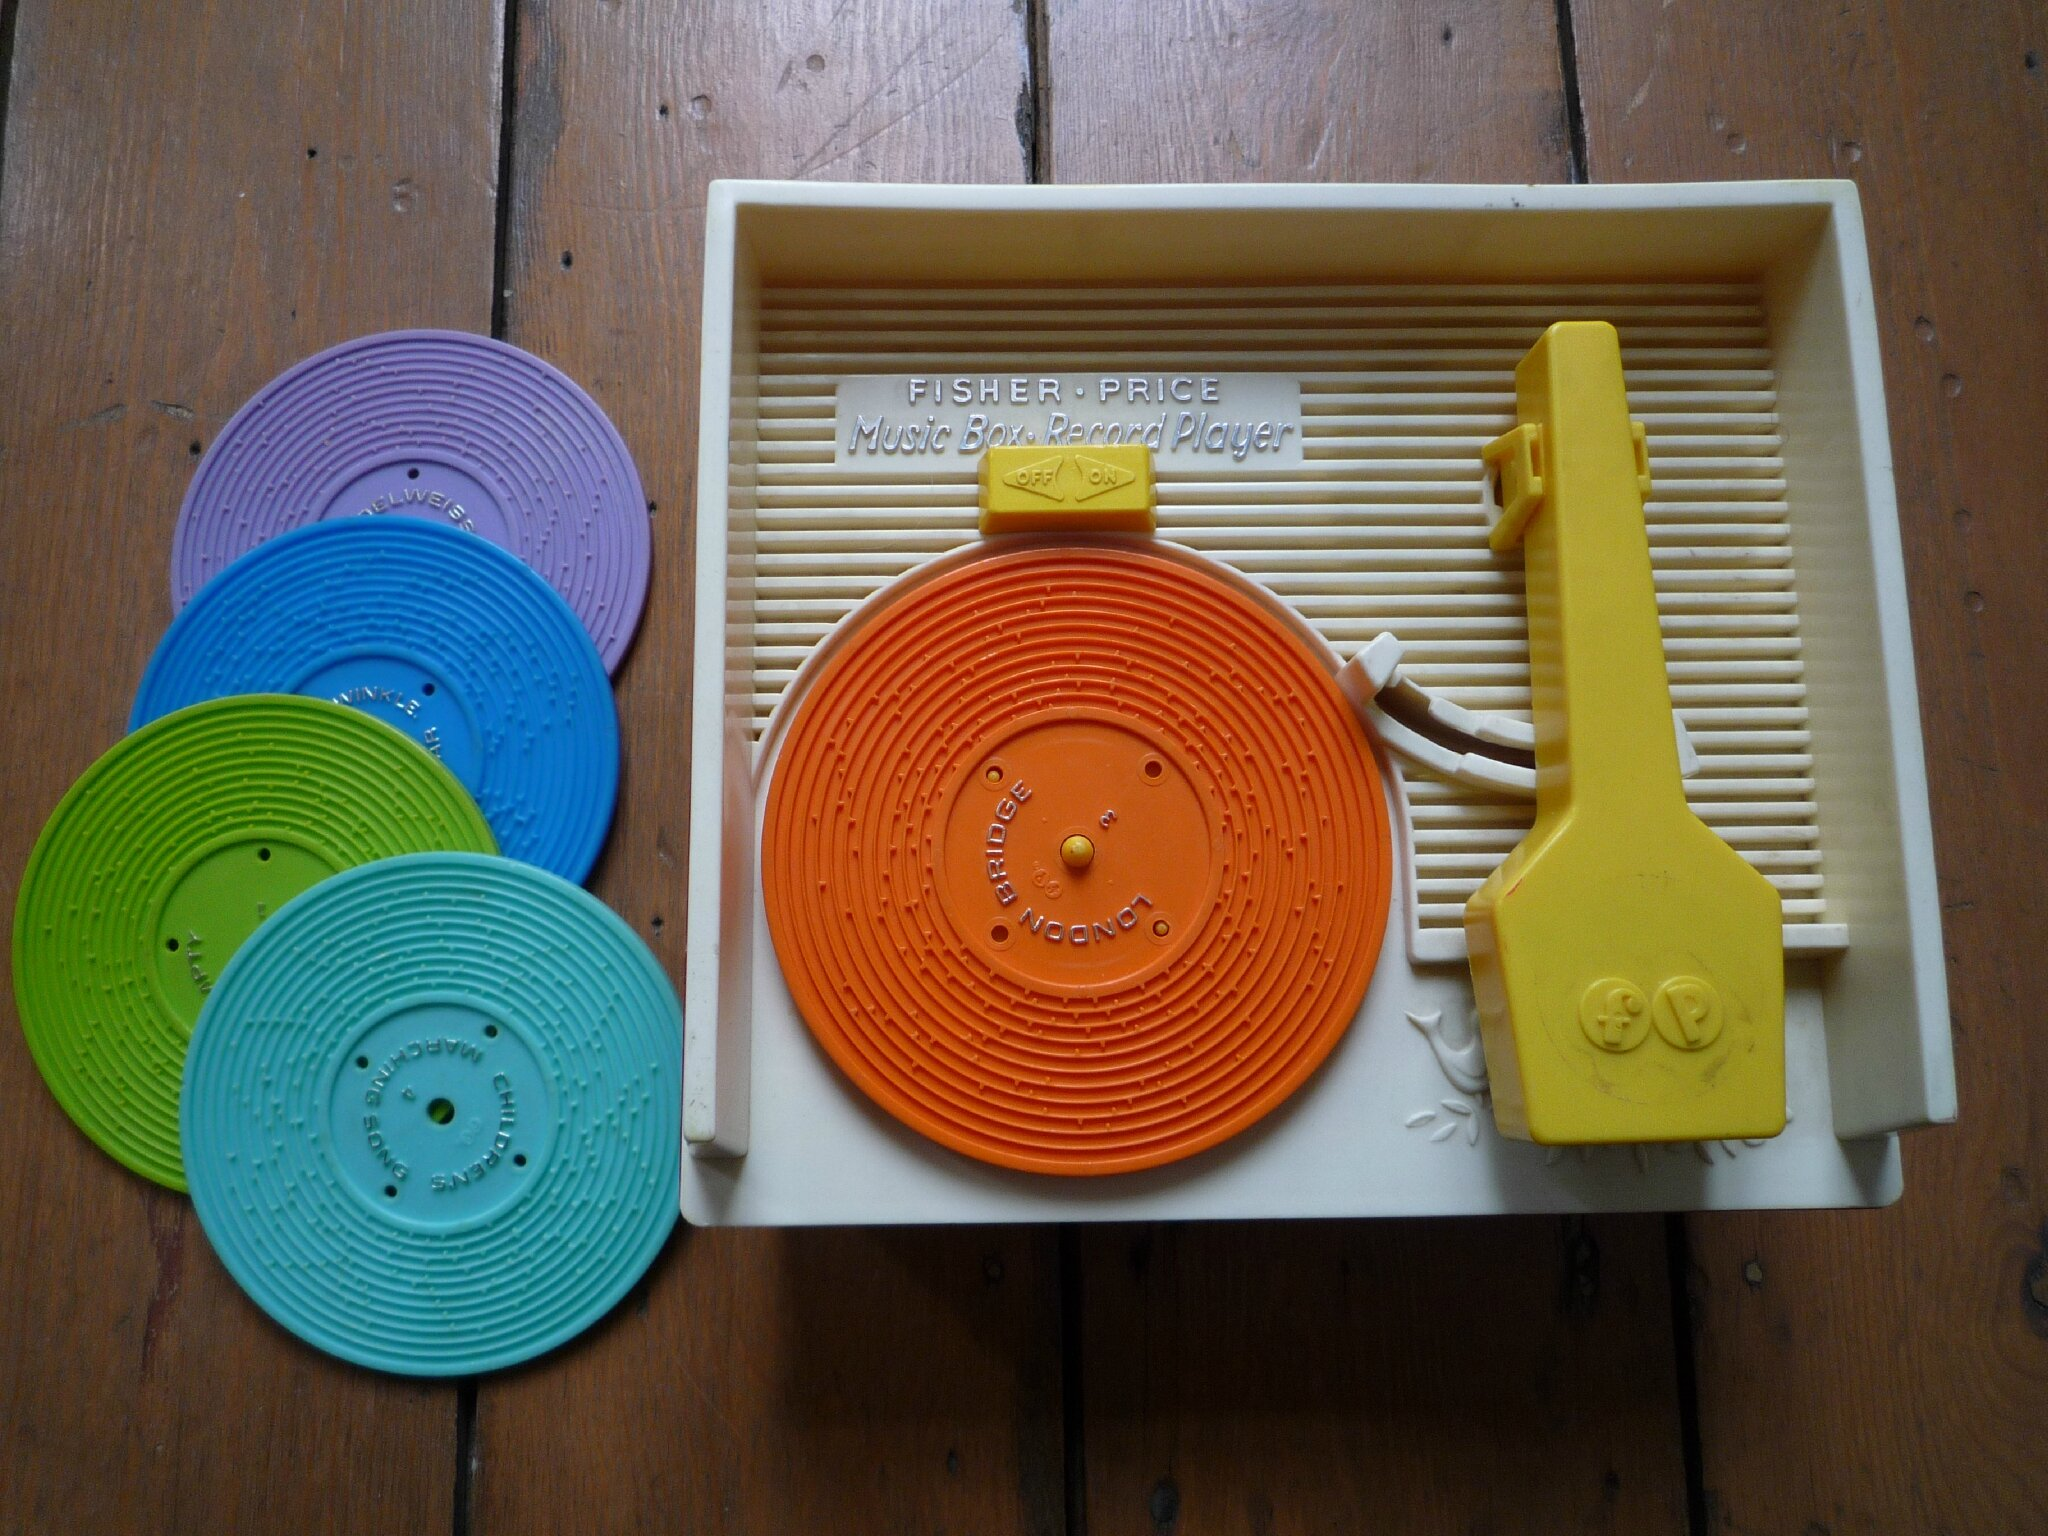 Music box record player - Fisher Price (2)